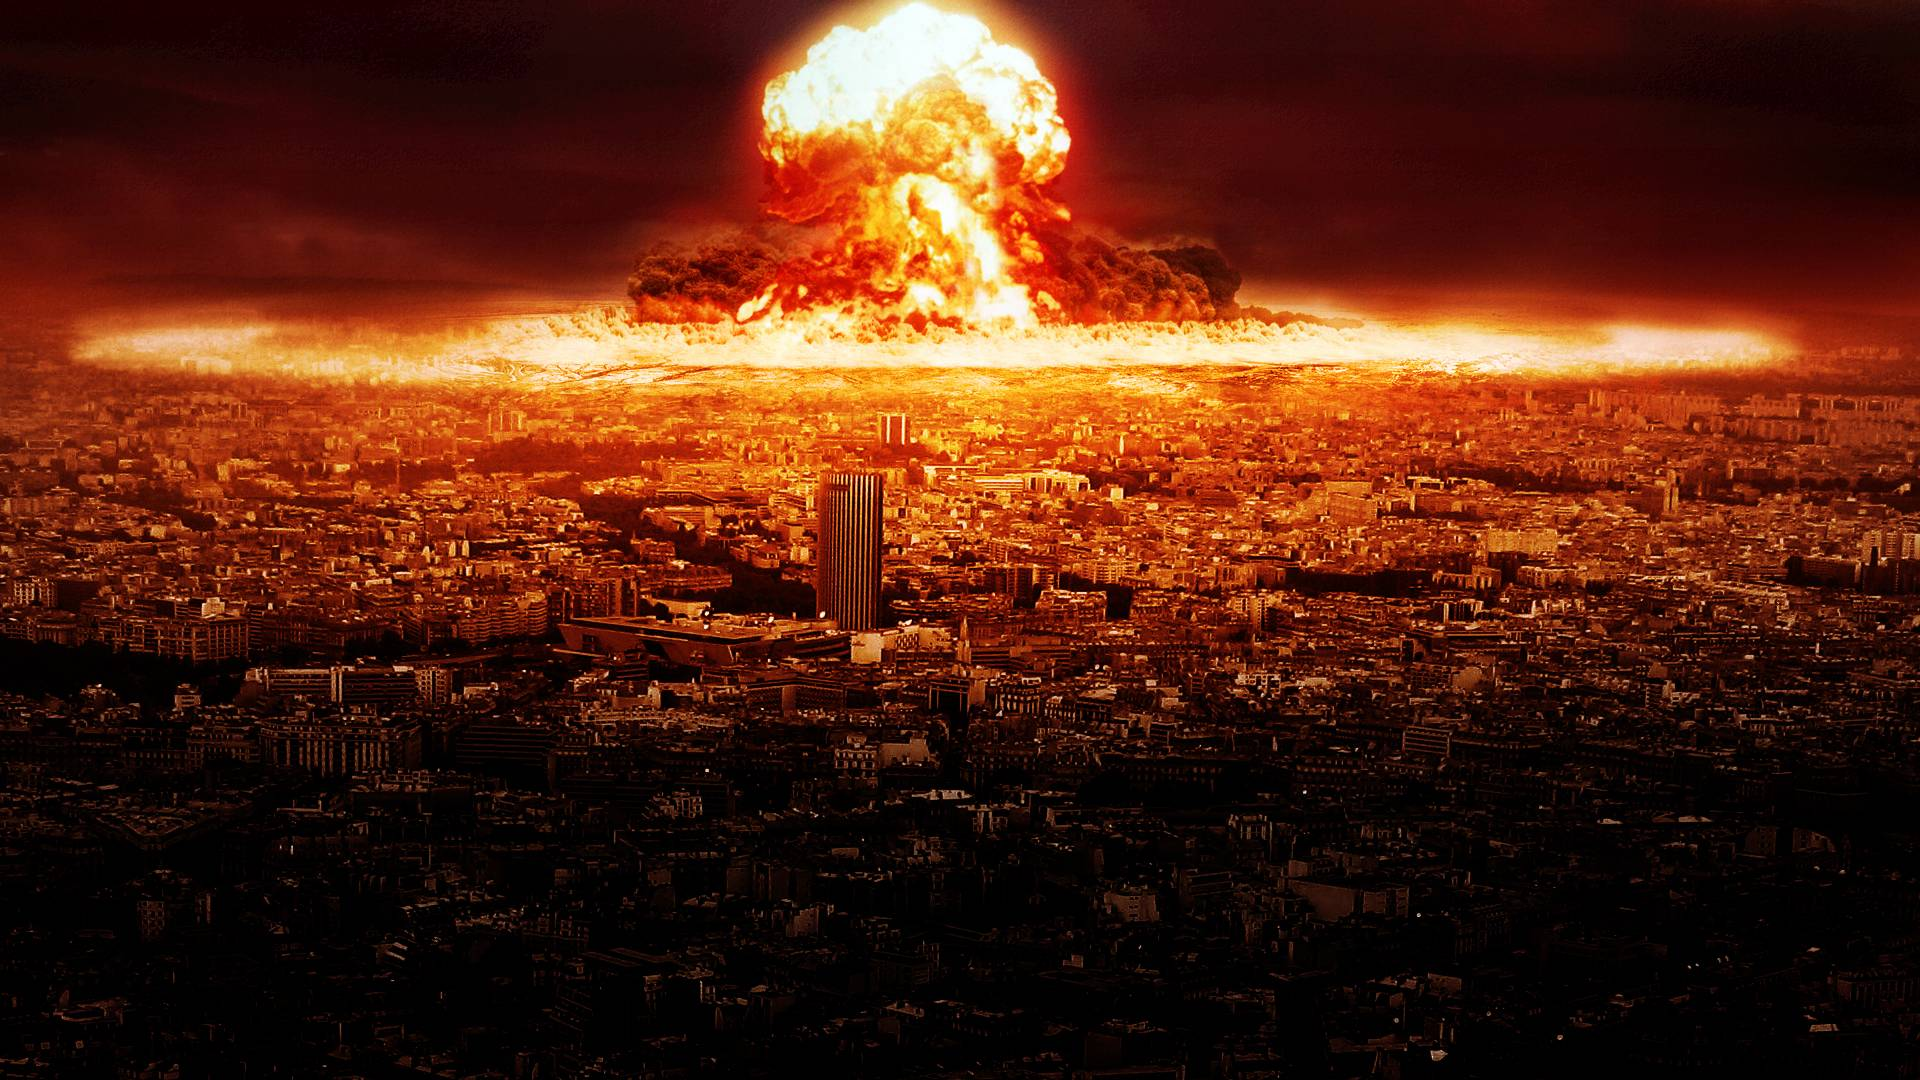 Nuclear Explosion Wallpapers Top Free Nuclear Explosion Backgrounds Wallpaperaccess